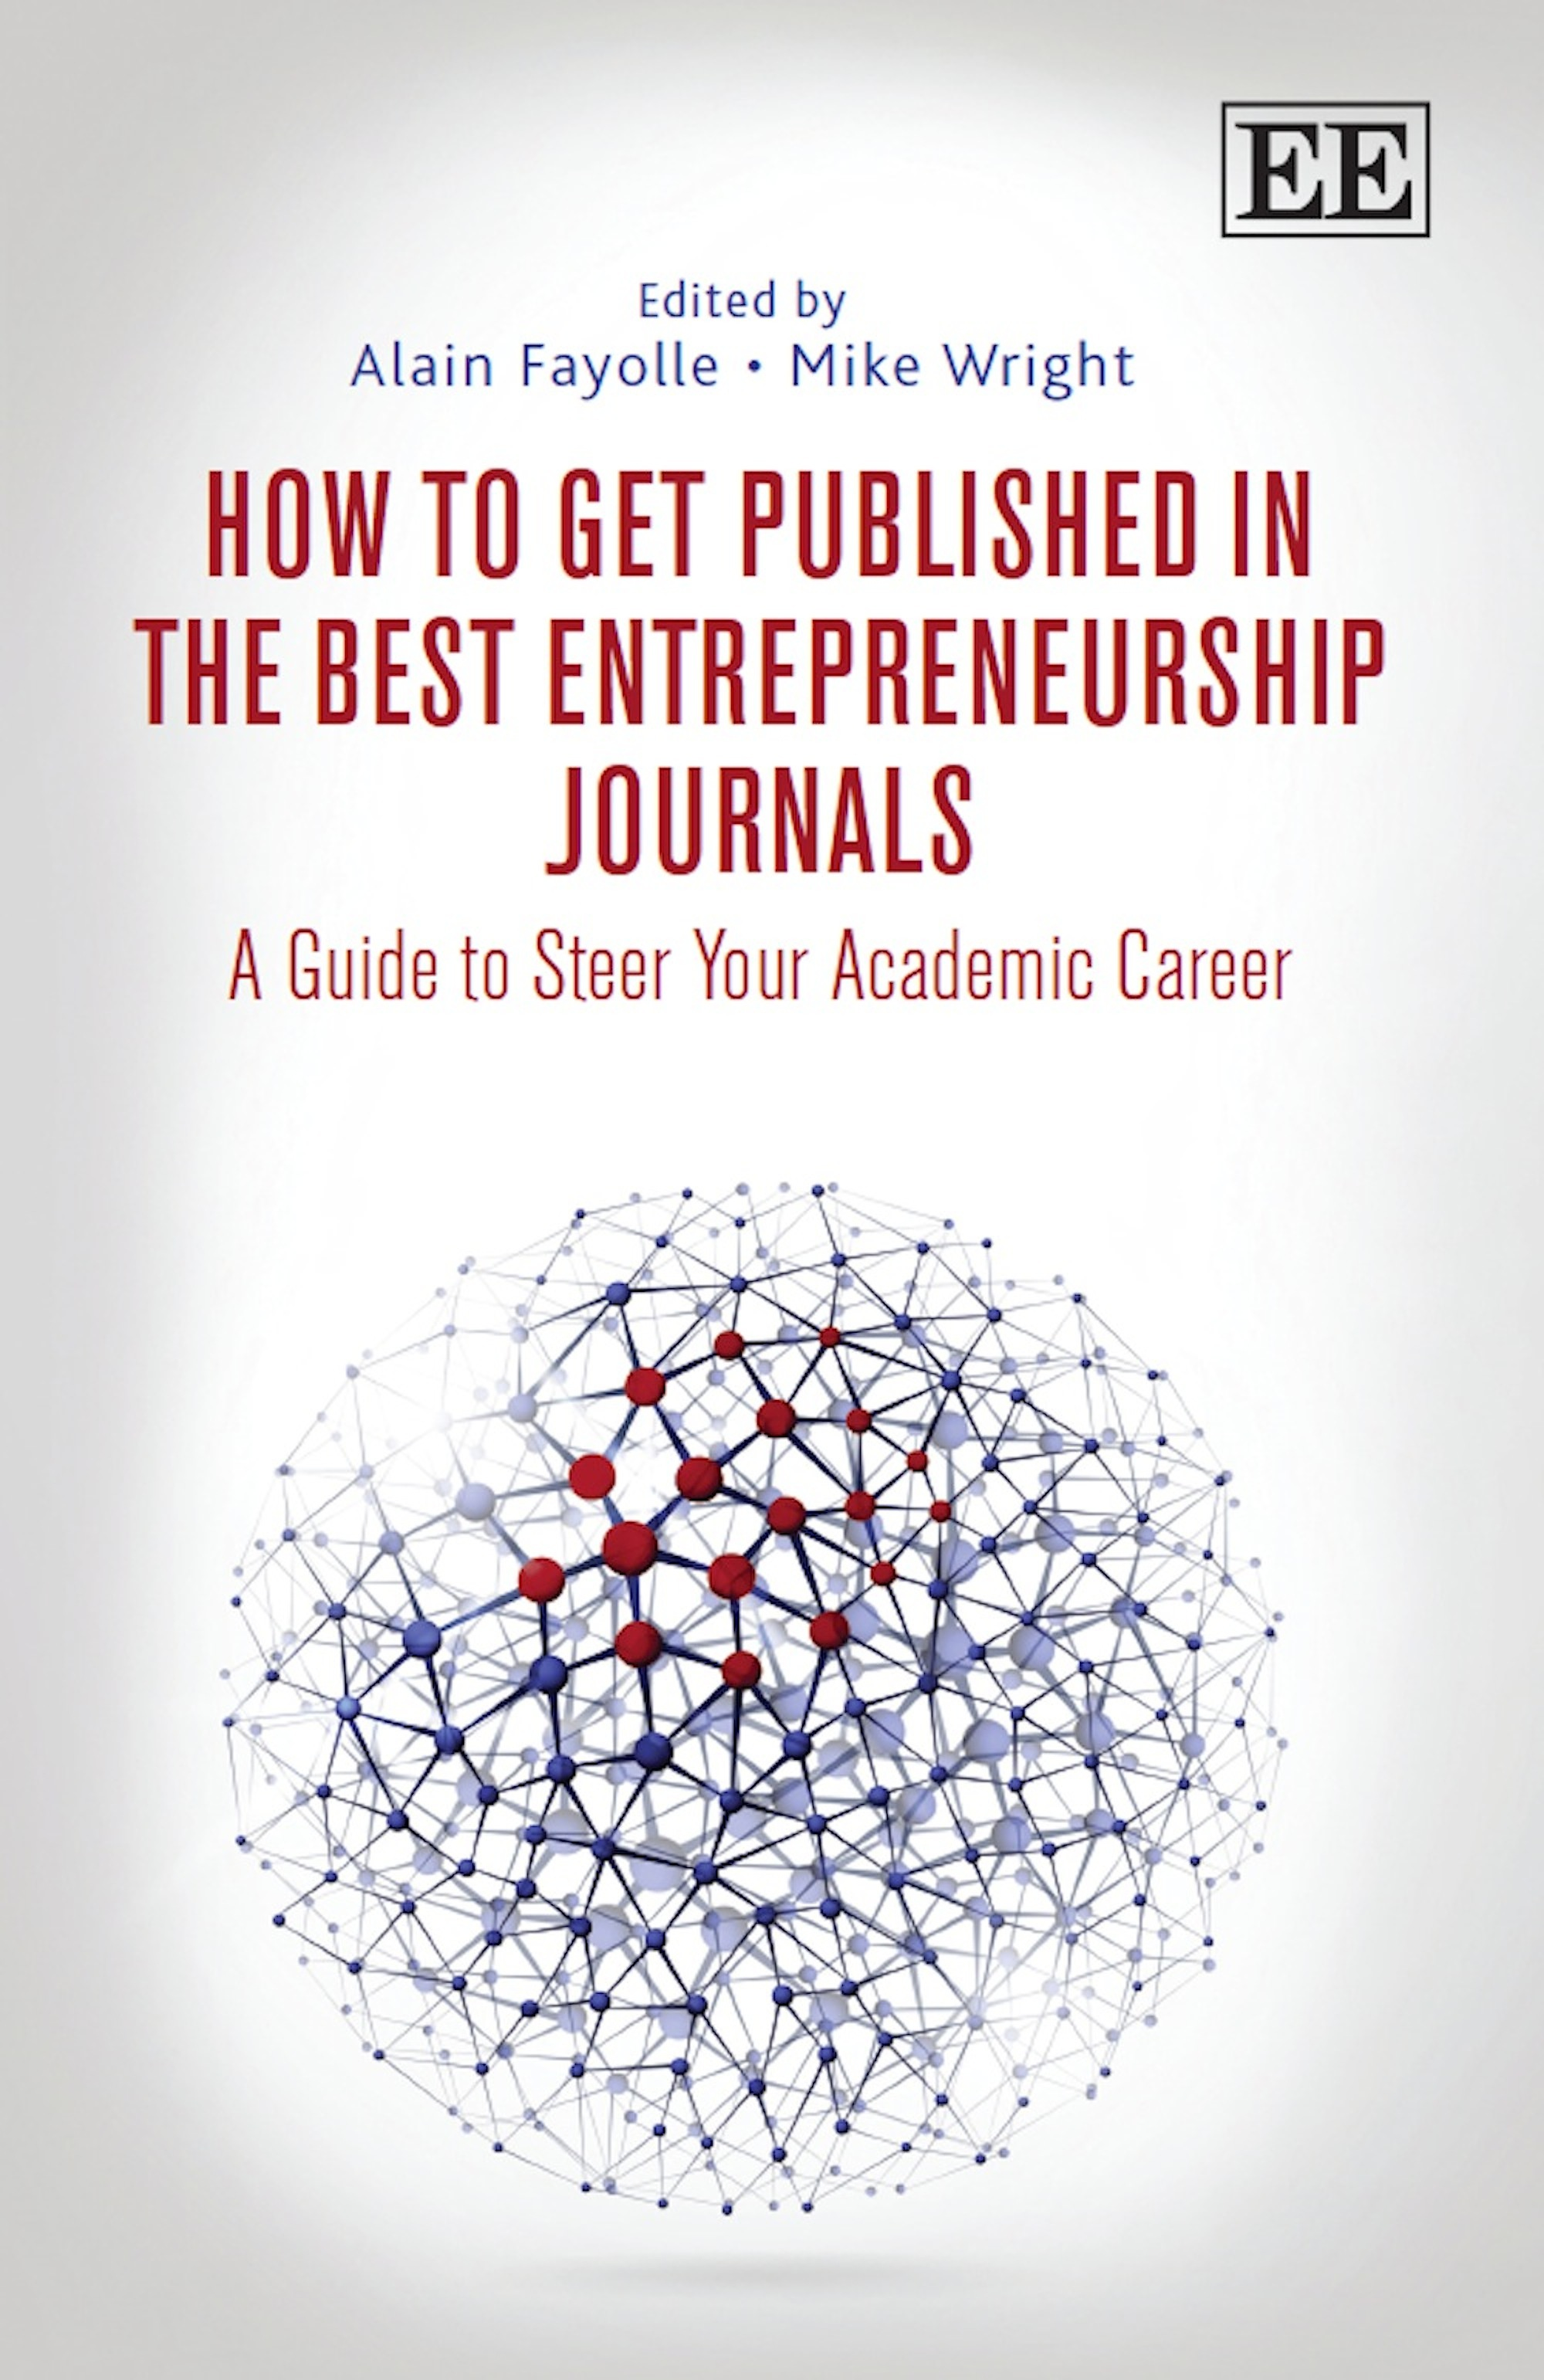 Download Ebook How to Get Published in the Best Entrepreneurship Journals by A. Fayolle Pdf